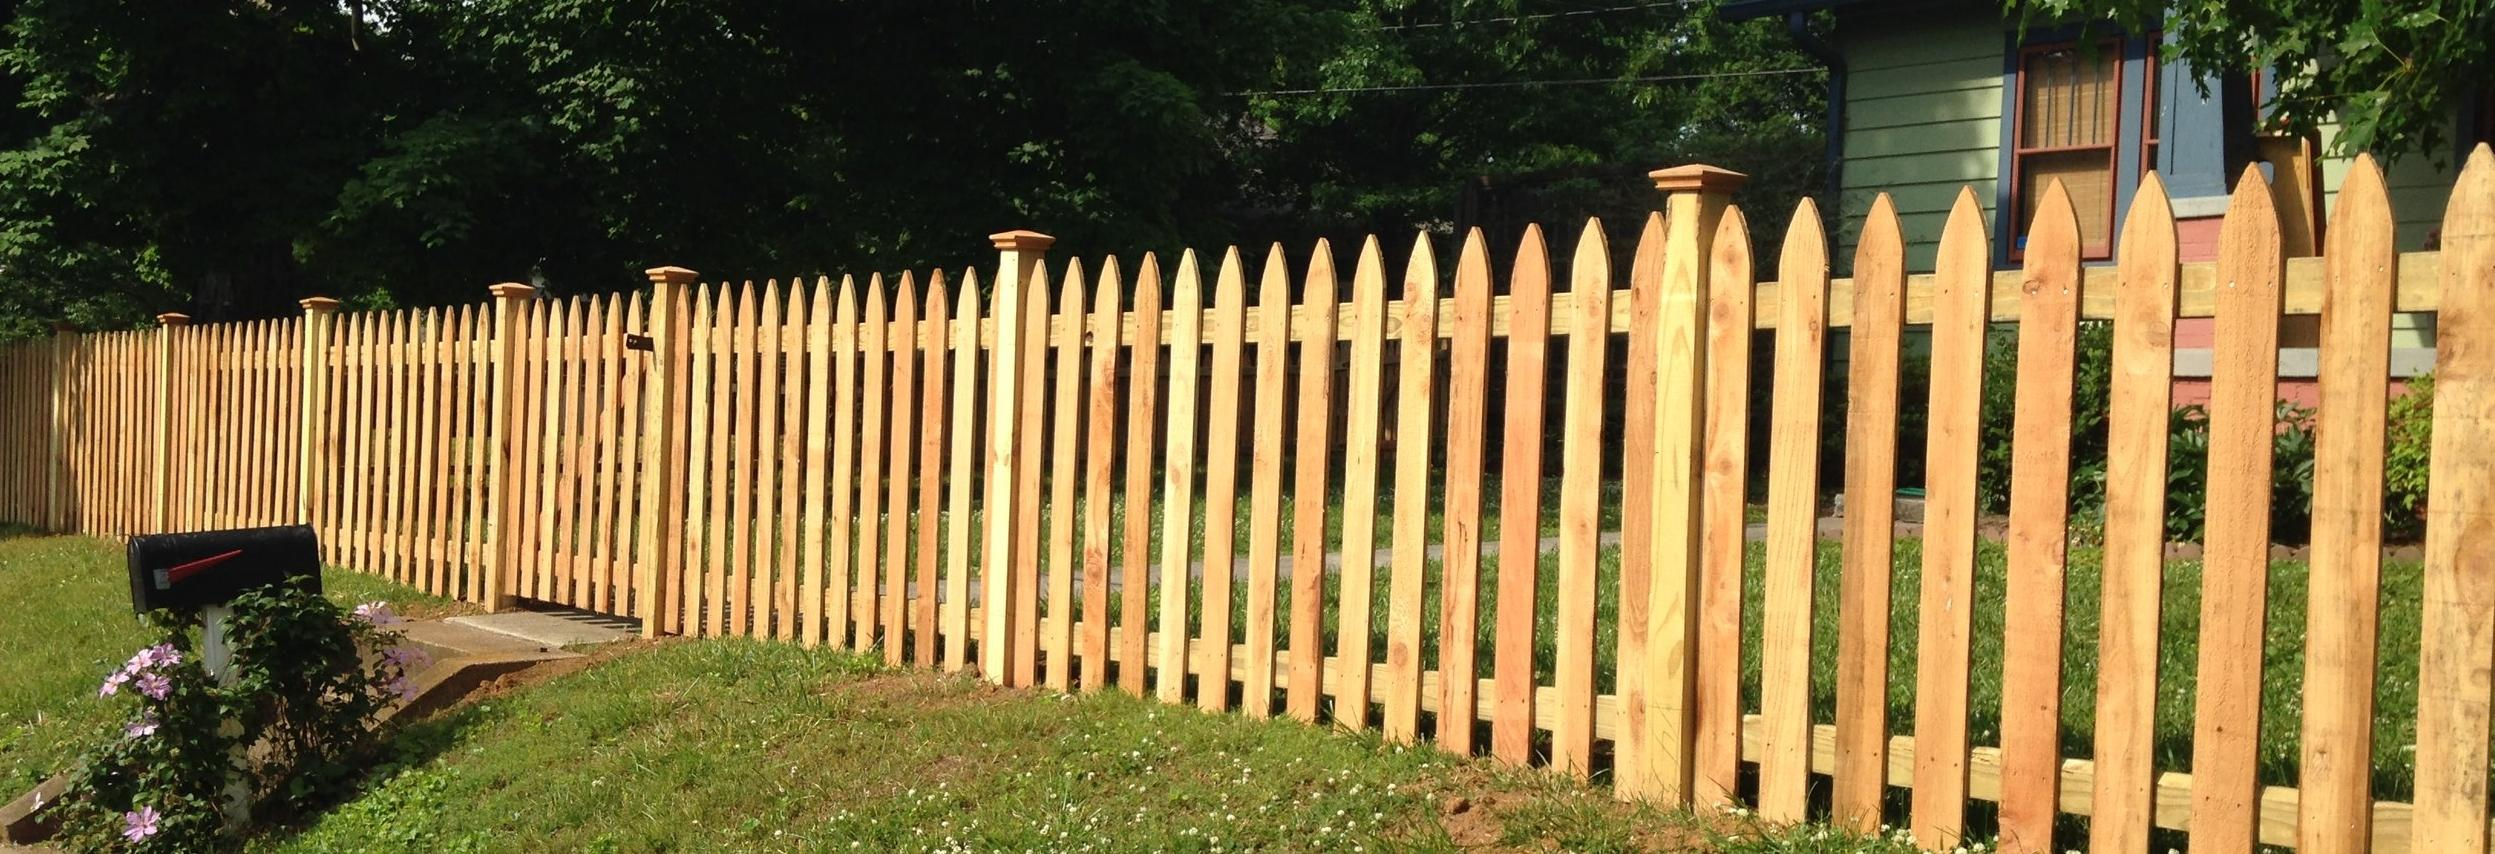 esch's fencing.fencing,fence,fence replacement,logo,wire fence,